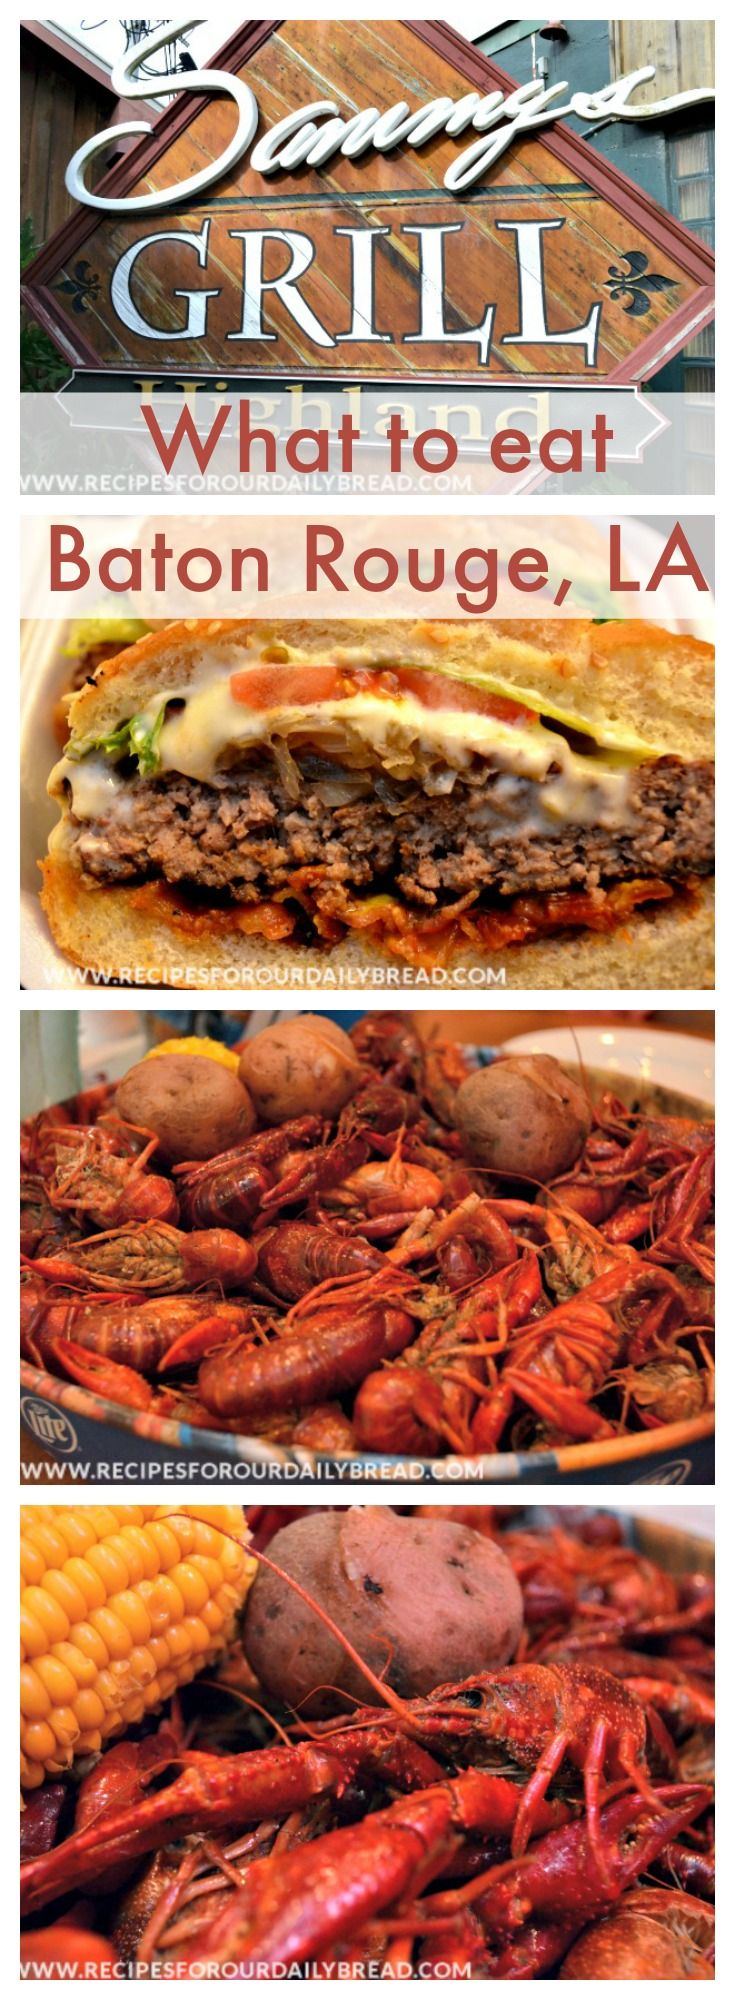 What To Eat In Baton Rouge La Sammy S Grill Http Recipesforourdailybread